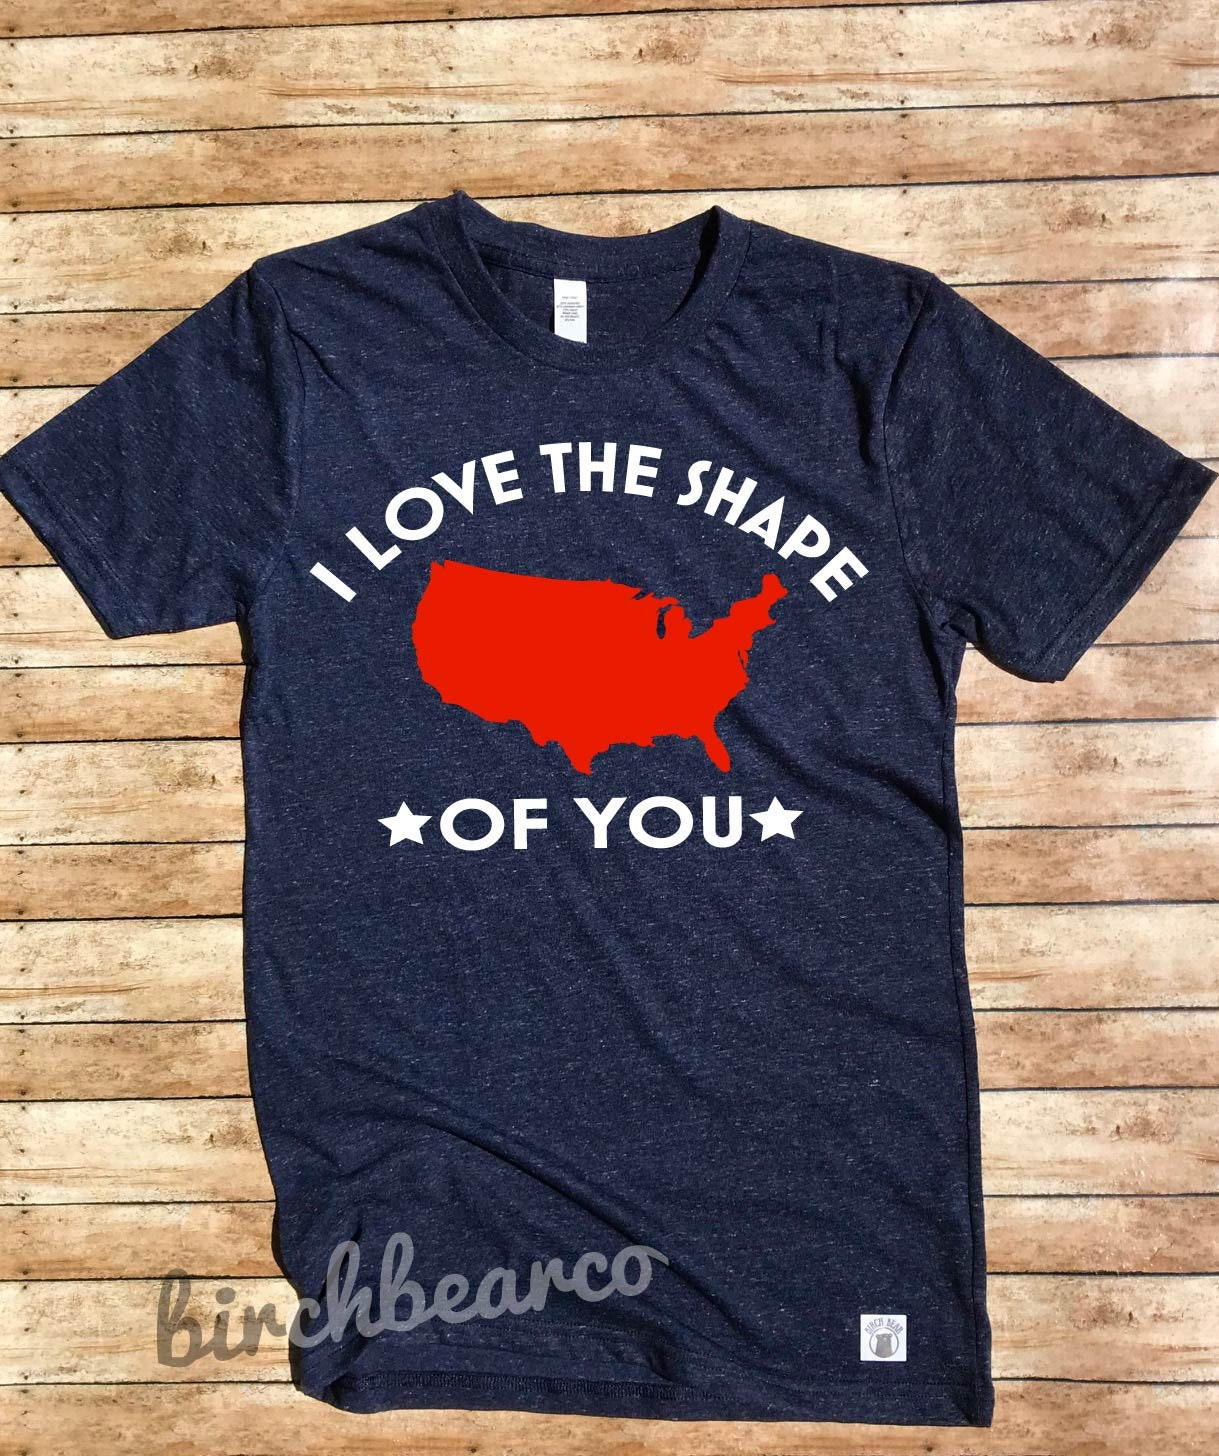 676ba737 Unisex Triblend T Shirt - I Love The Shape Of You - Patriotic Shirt ...